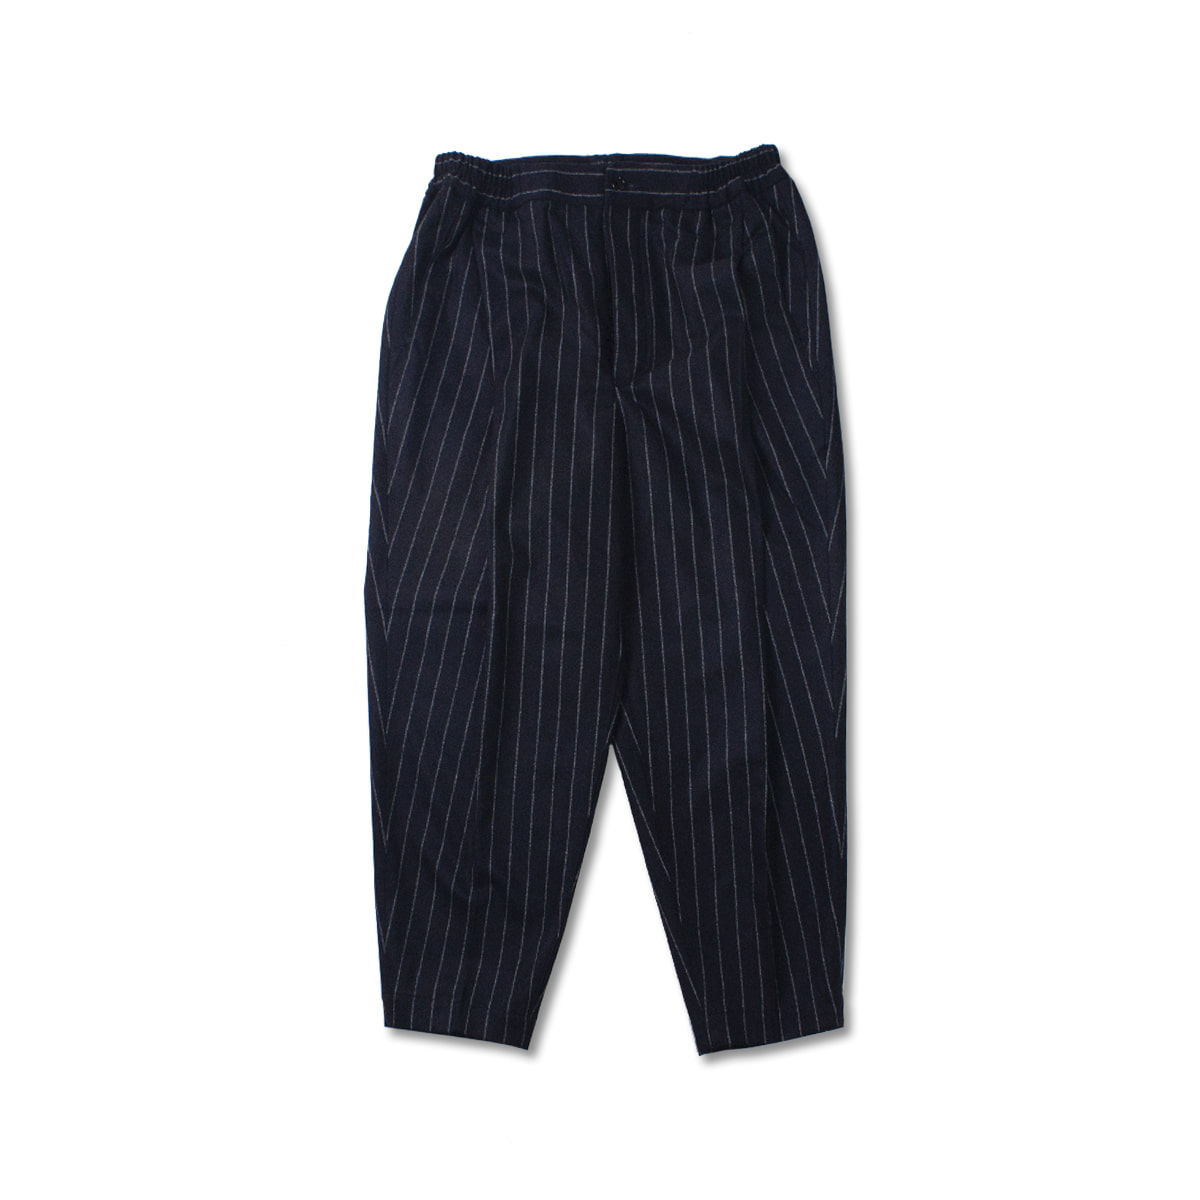 [HAVERSACK] SIDE ELASTIC PLEATED PANTS 'BLACK/STRIPE'